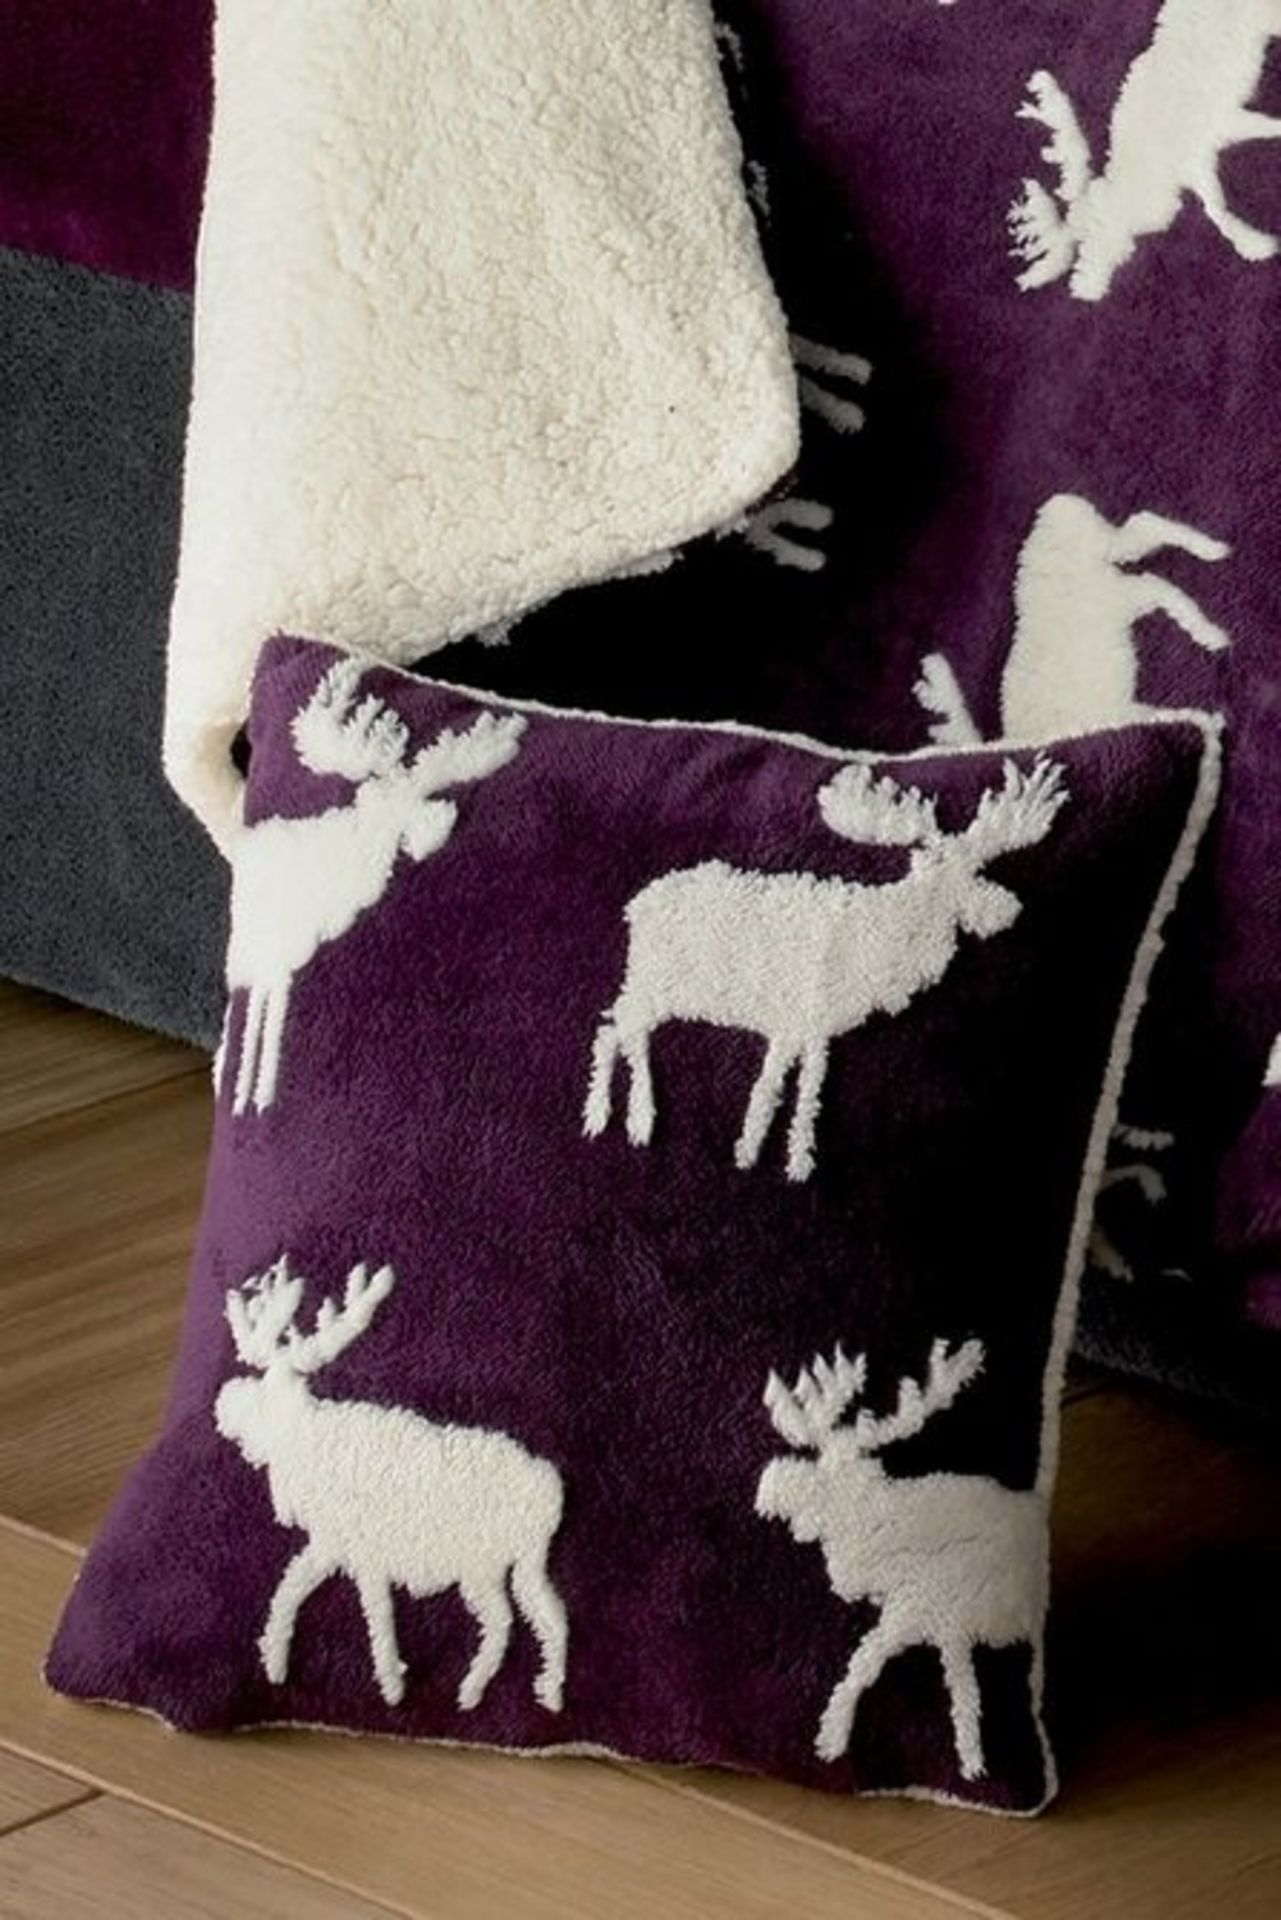 Lot 50 - 1 BAGGED WARM AND COSY TEDDY 3D STAG CUSHION COVER IN PLUM (PUBLIC VIEWING AVAILABLE)